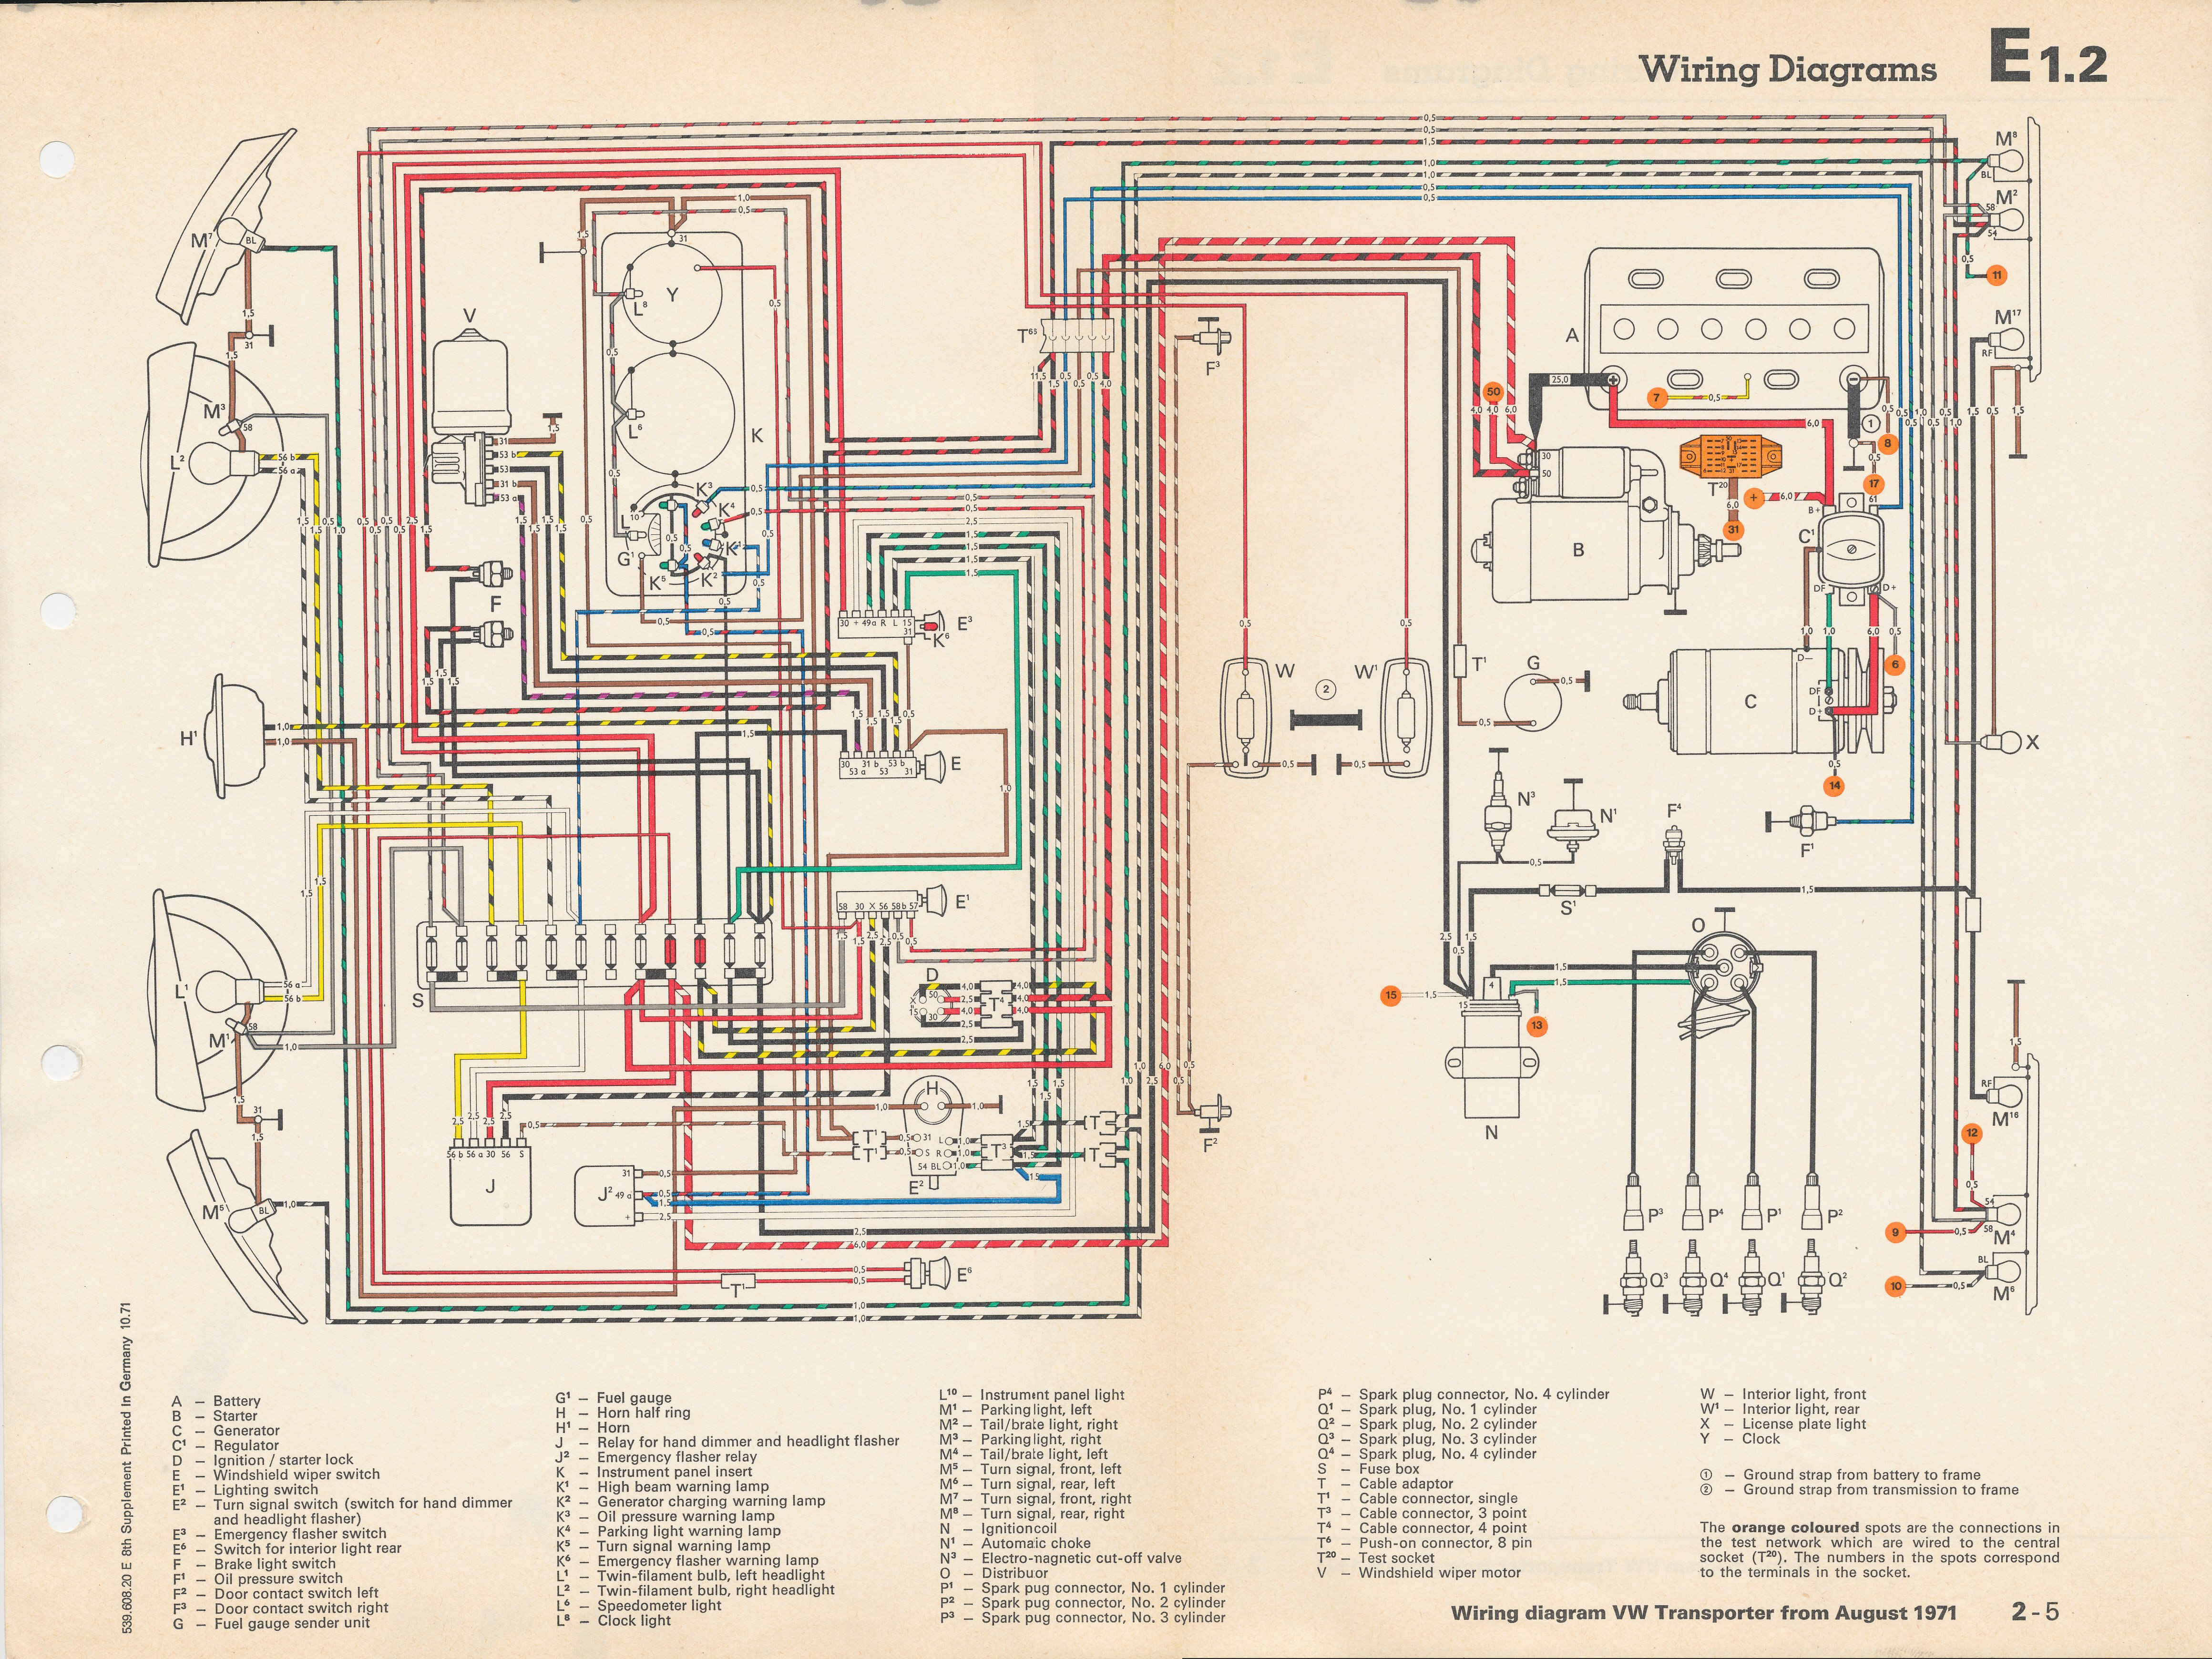 Wiring Diagram 1967 Vw Bus Electrical Diagrams Bug Fuse Box 1969 For Light Switch U2022 67